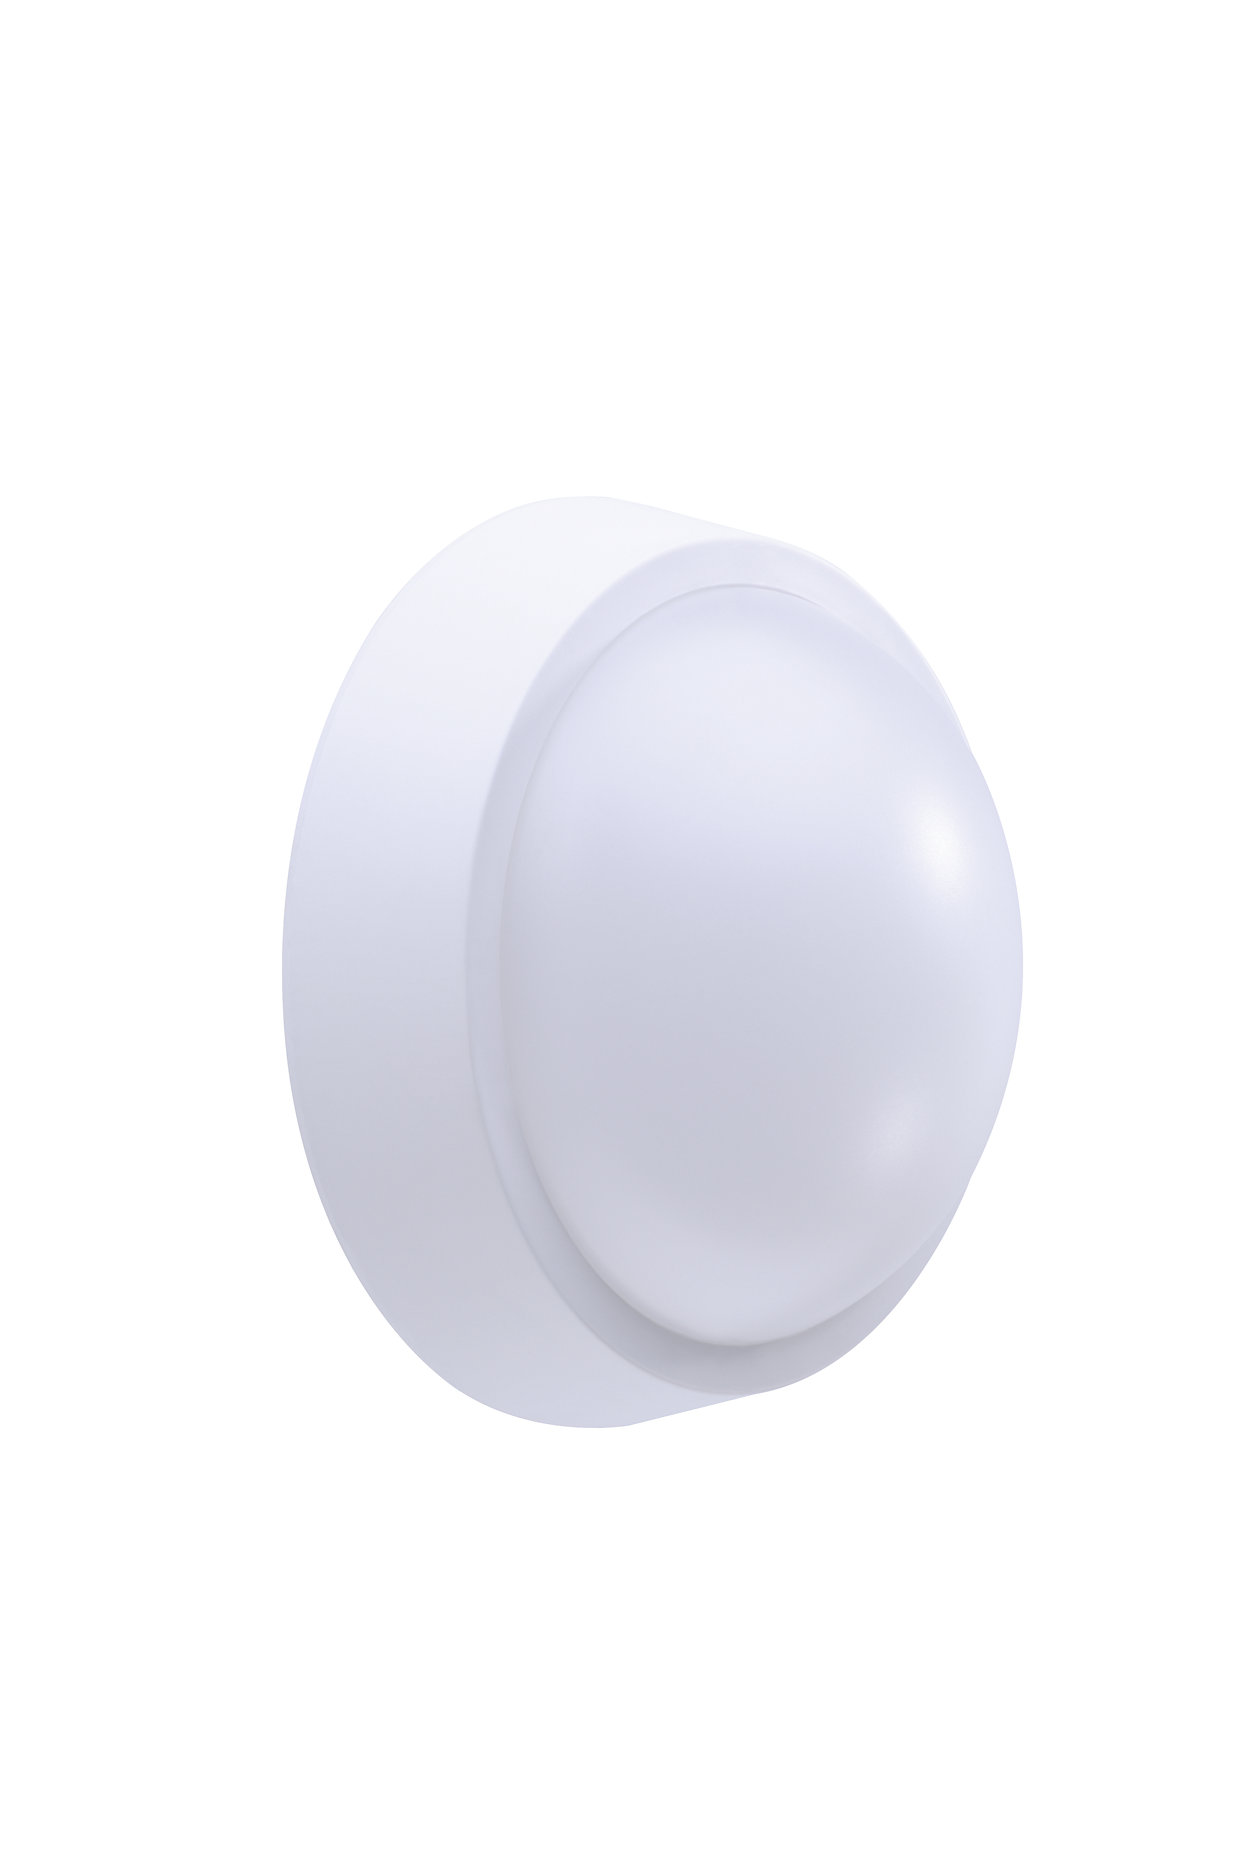 The new Philips Essential smartbright Bulkhead offers exceptional value. It is perfect for your everyday indoor and semi-outdoor lighting installations. It comes in two sizes and is dust- and waterproof.